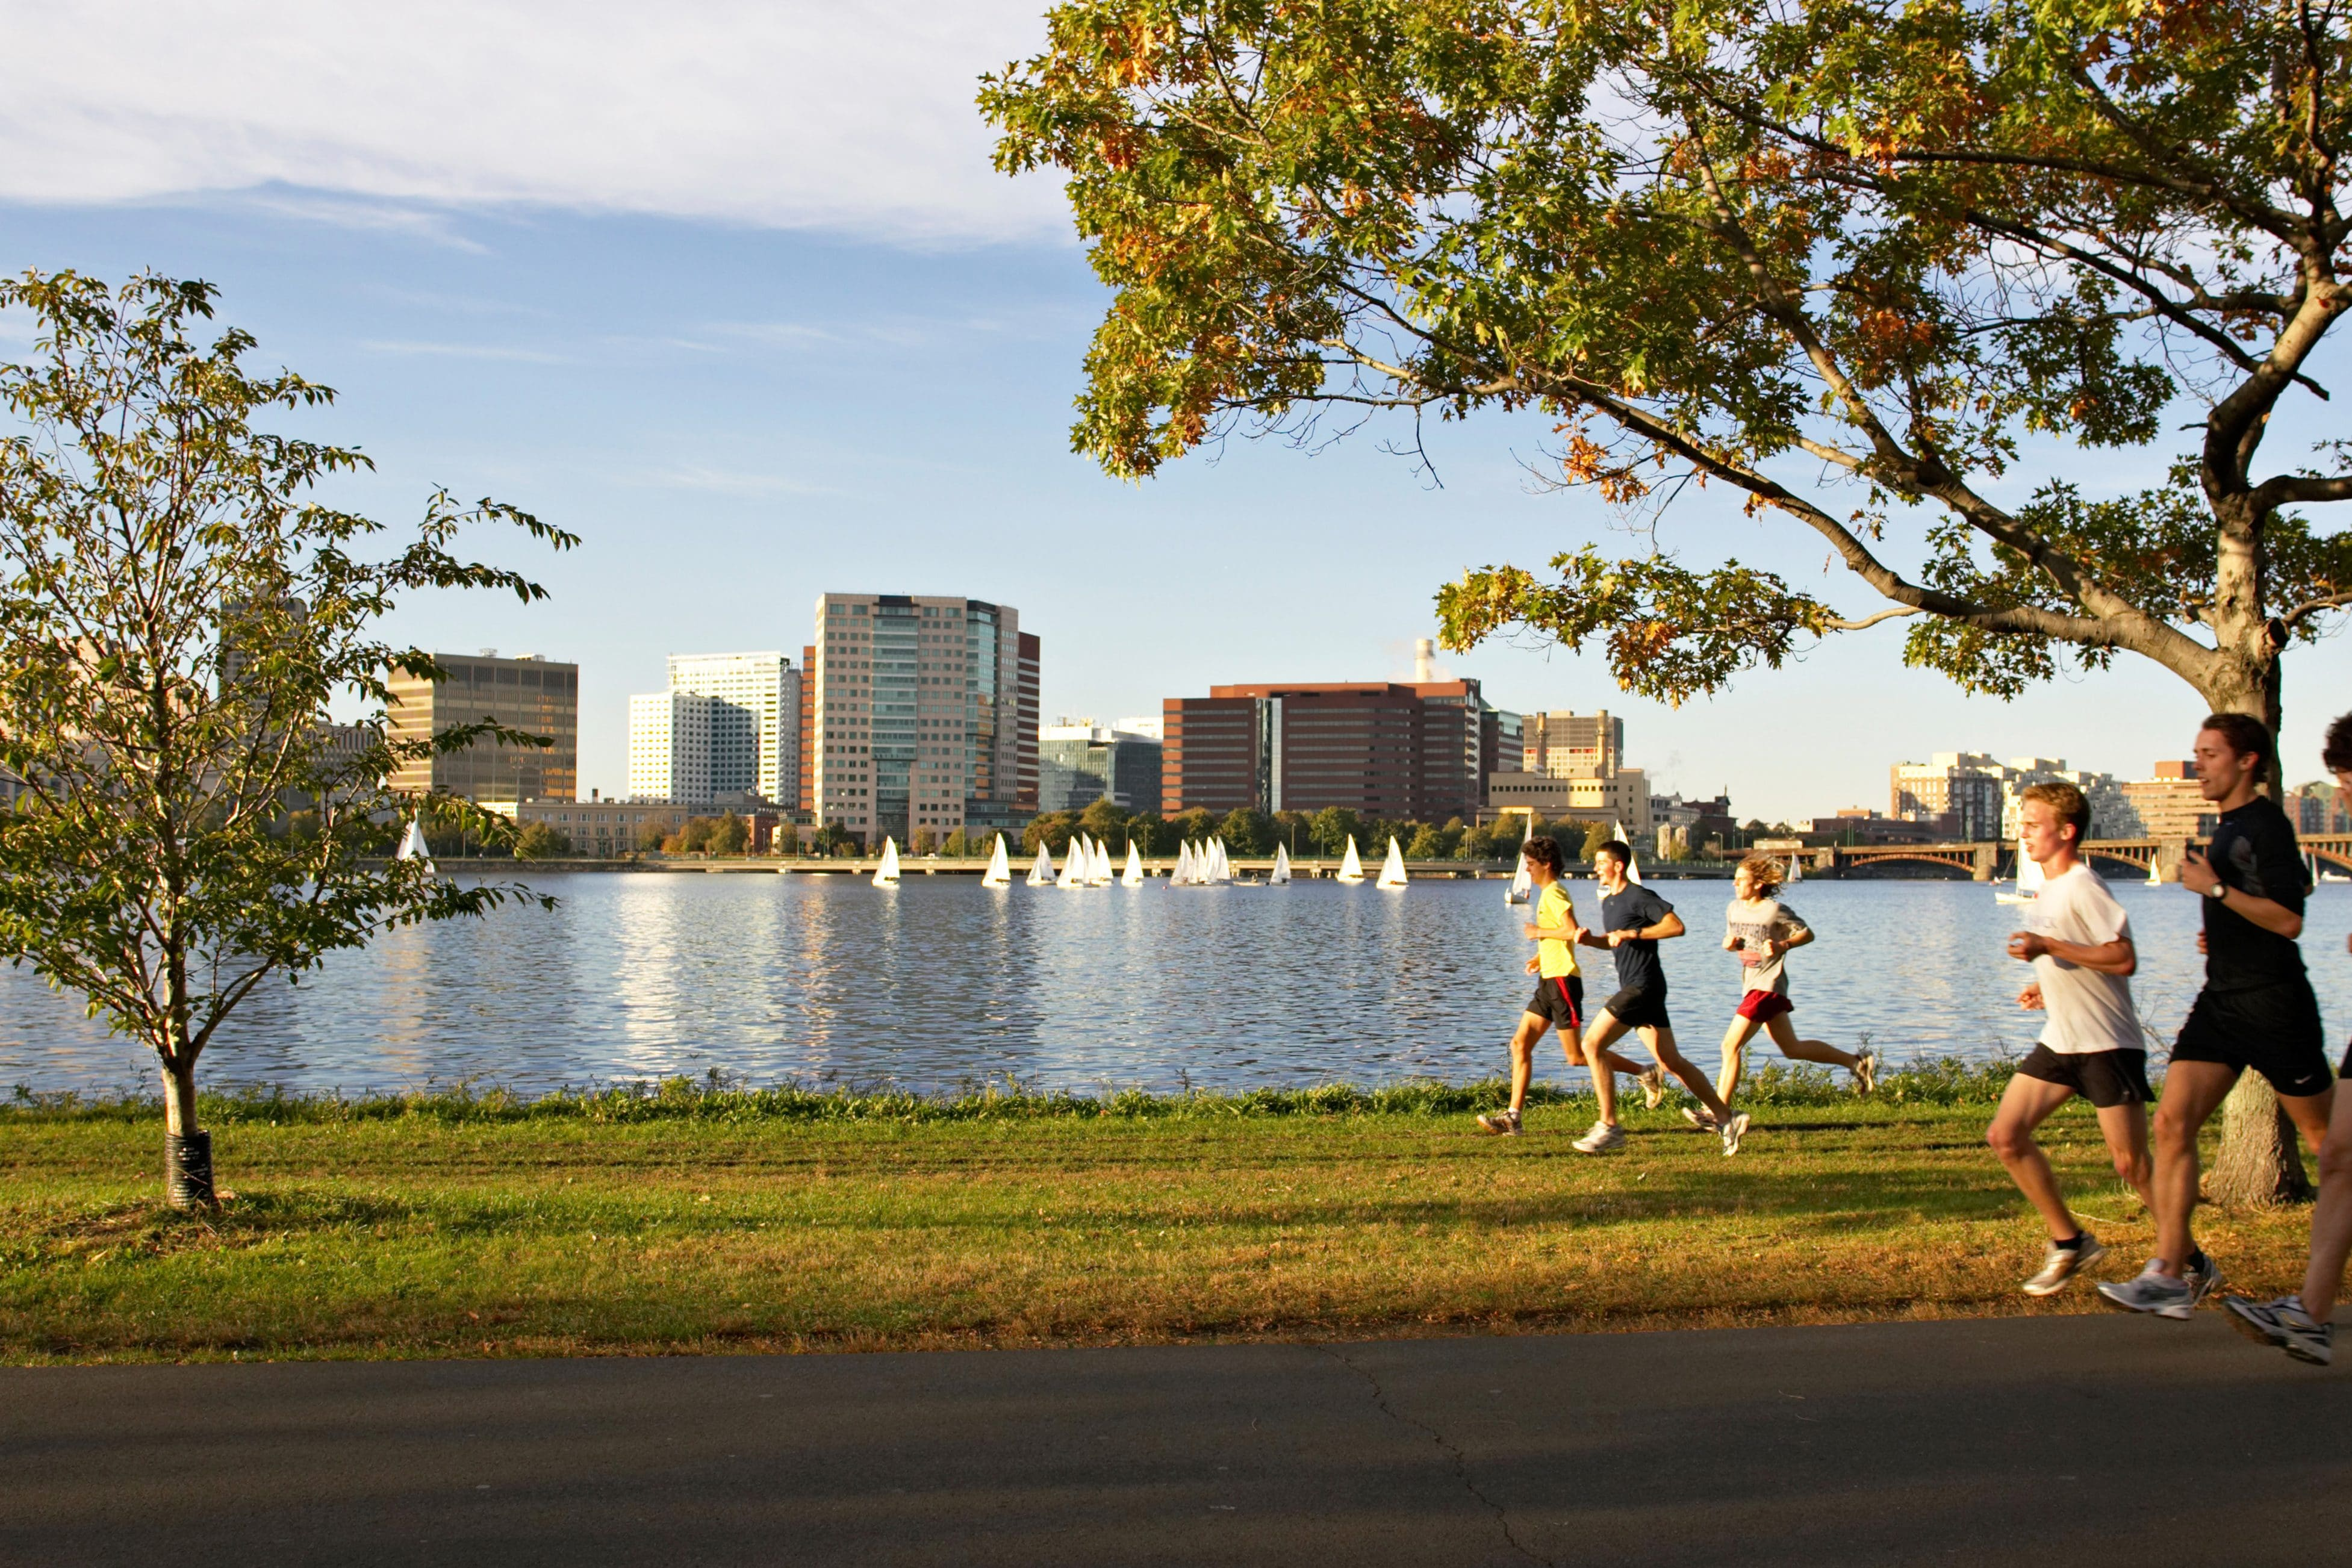 Runners make their way along Boston's Charles River bank in the early morning sun